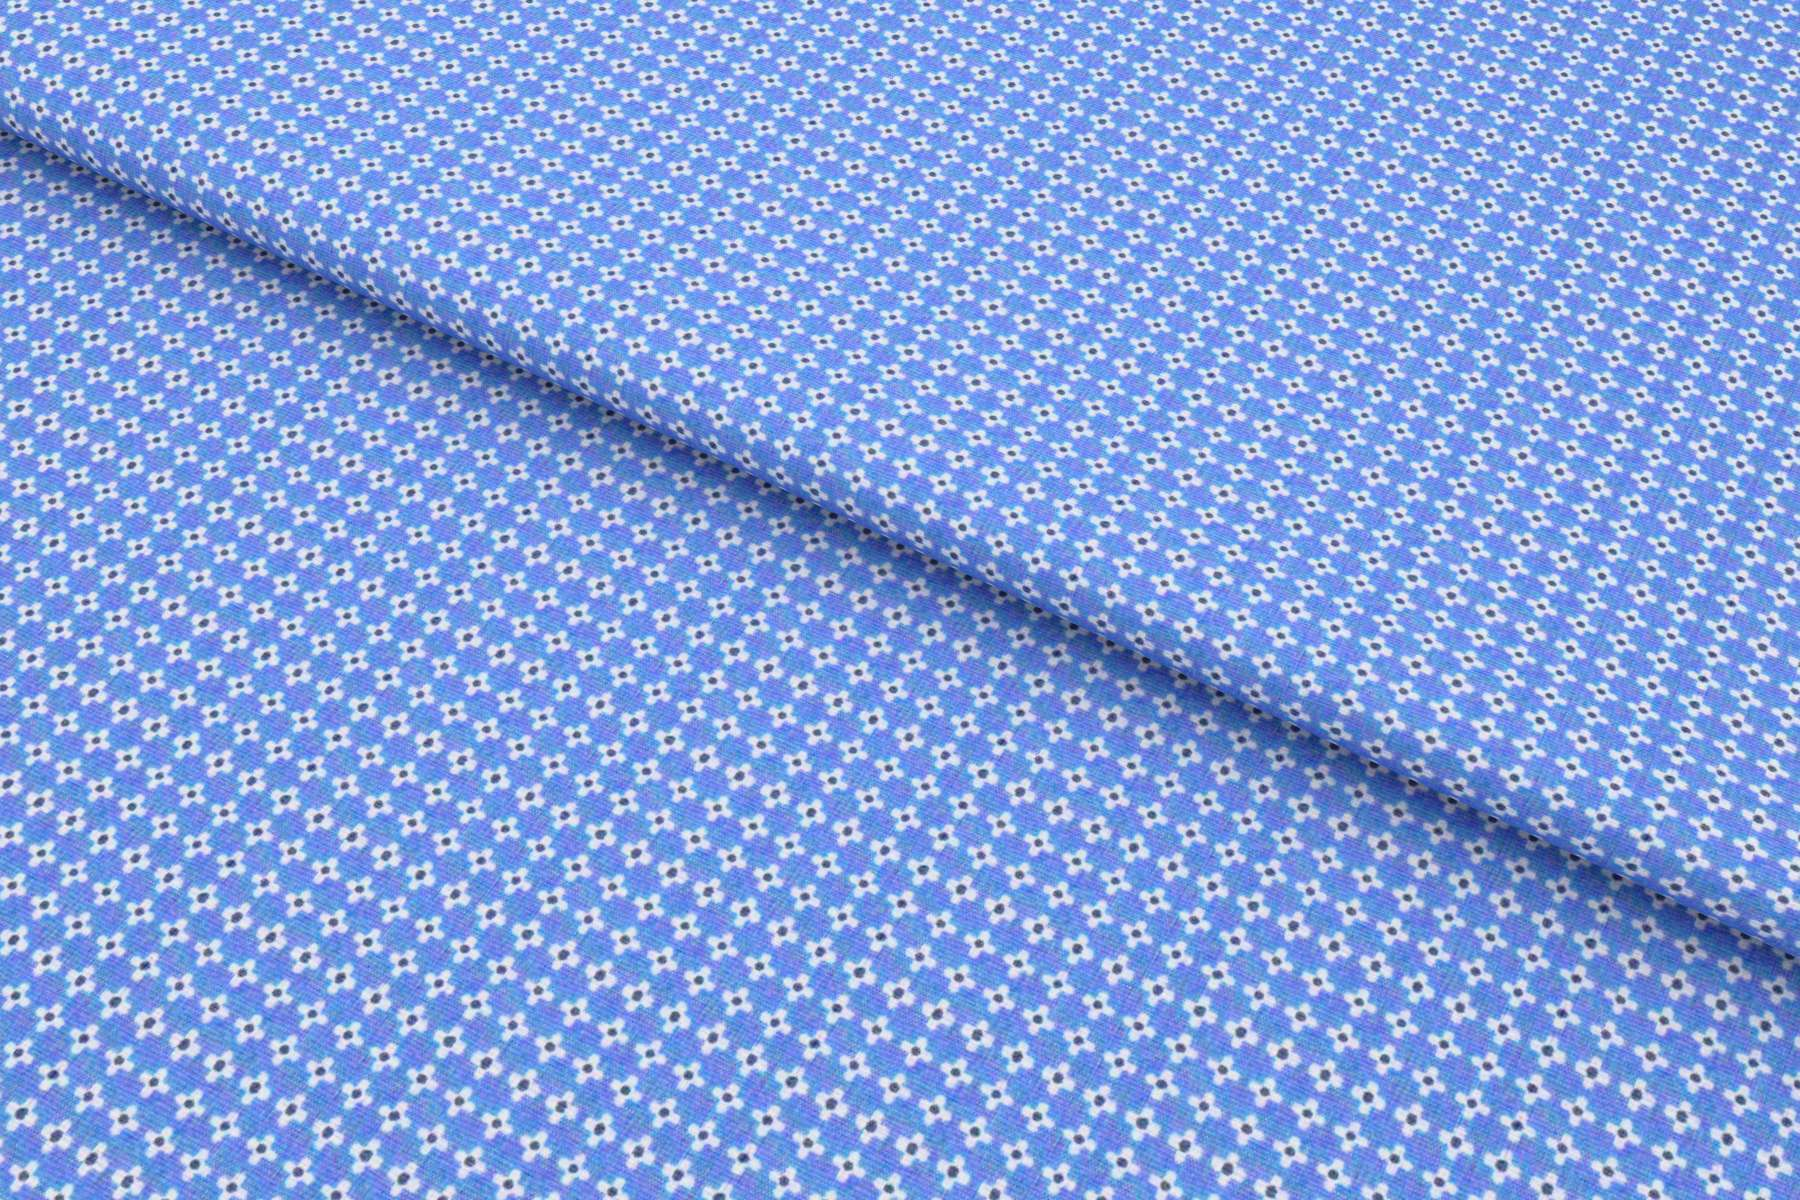 Blue Foulard print Shirt Fabric 84019